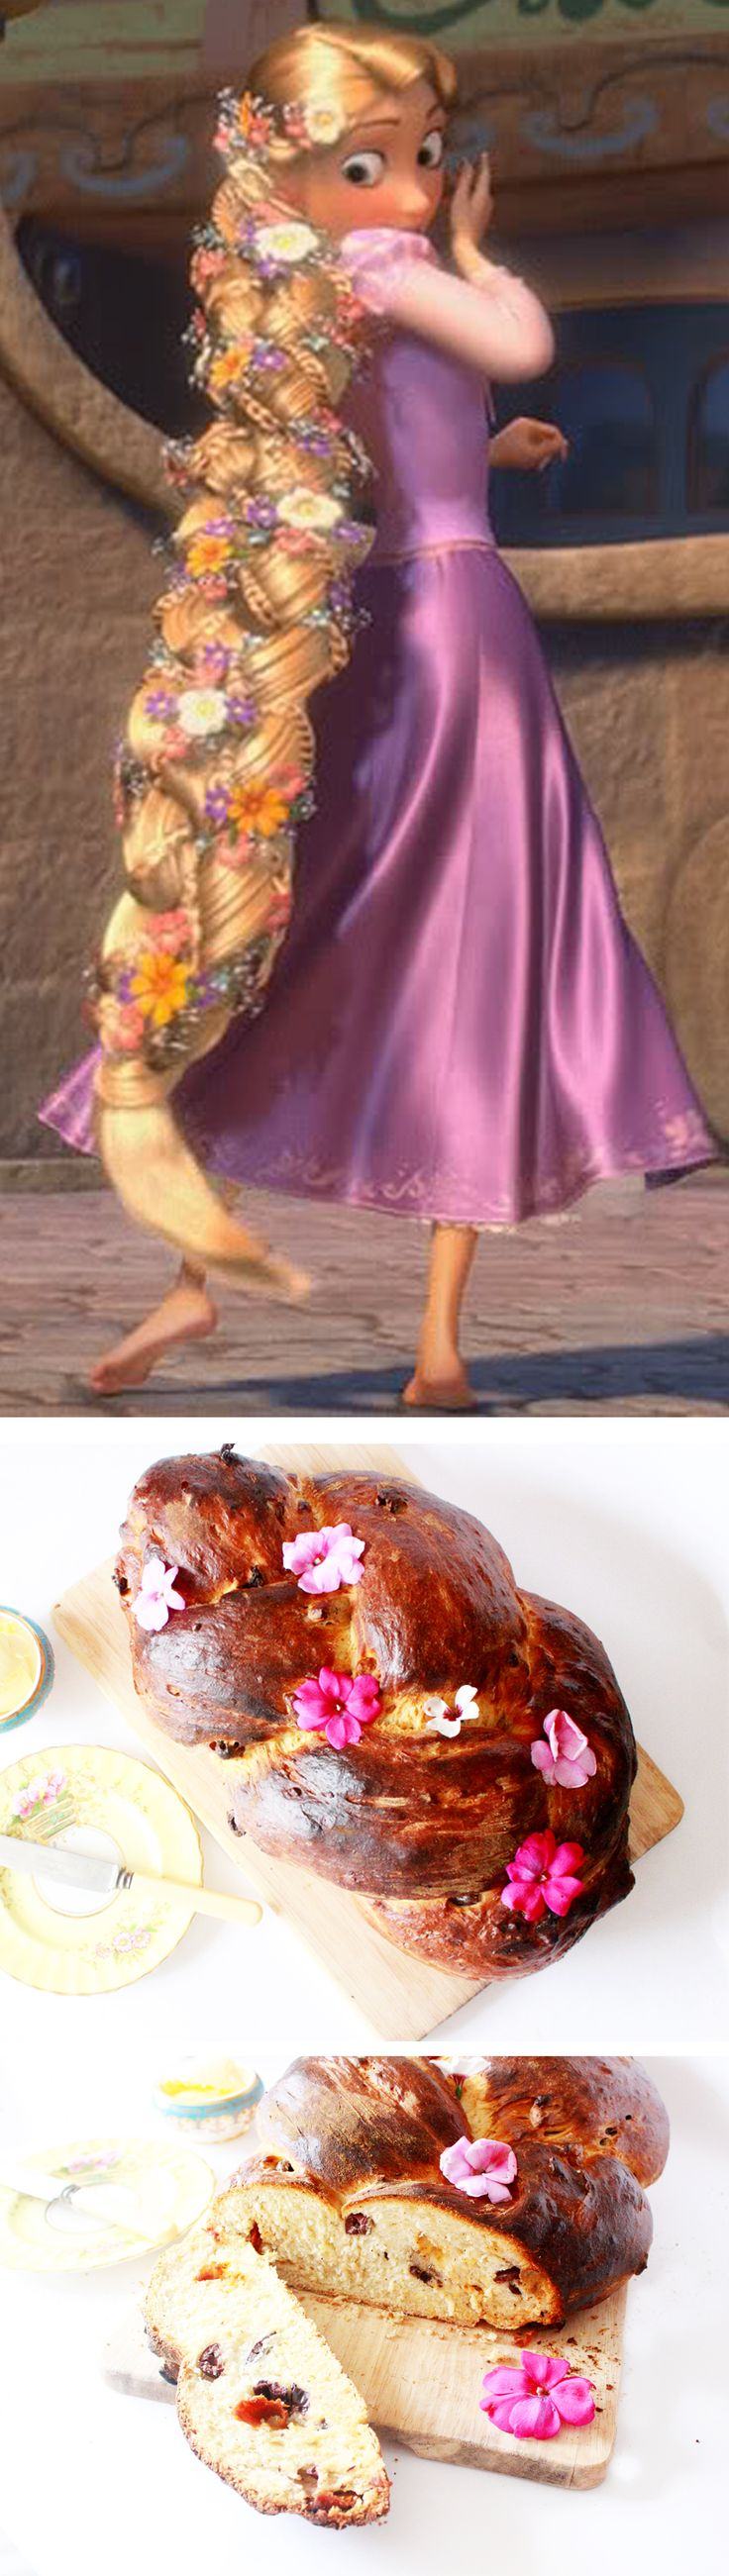 WTF Disney Bread Recipe - Rapunzel Plait Bread